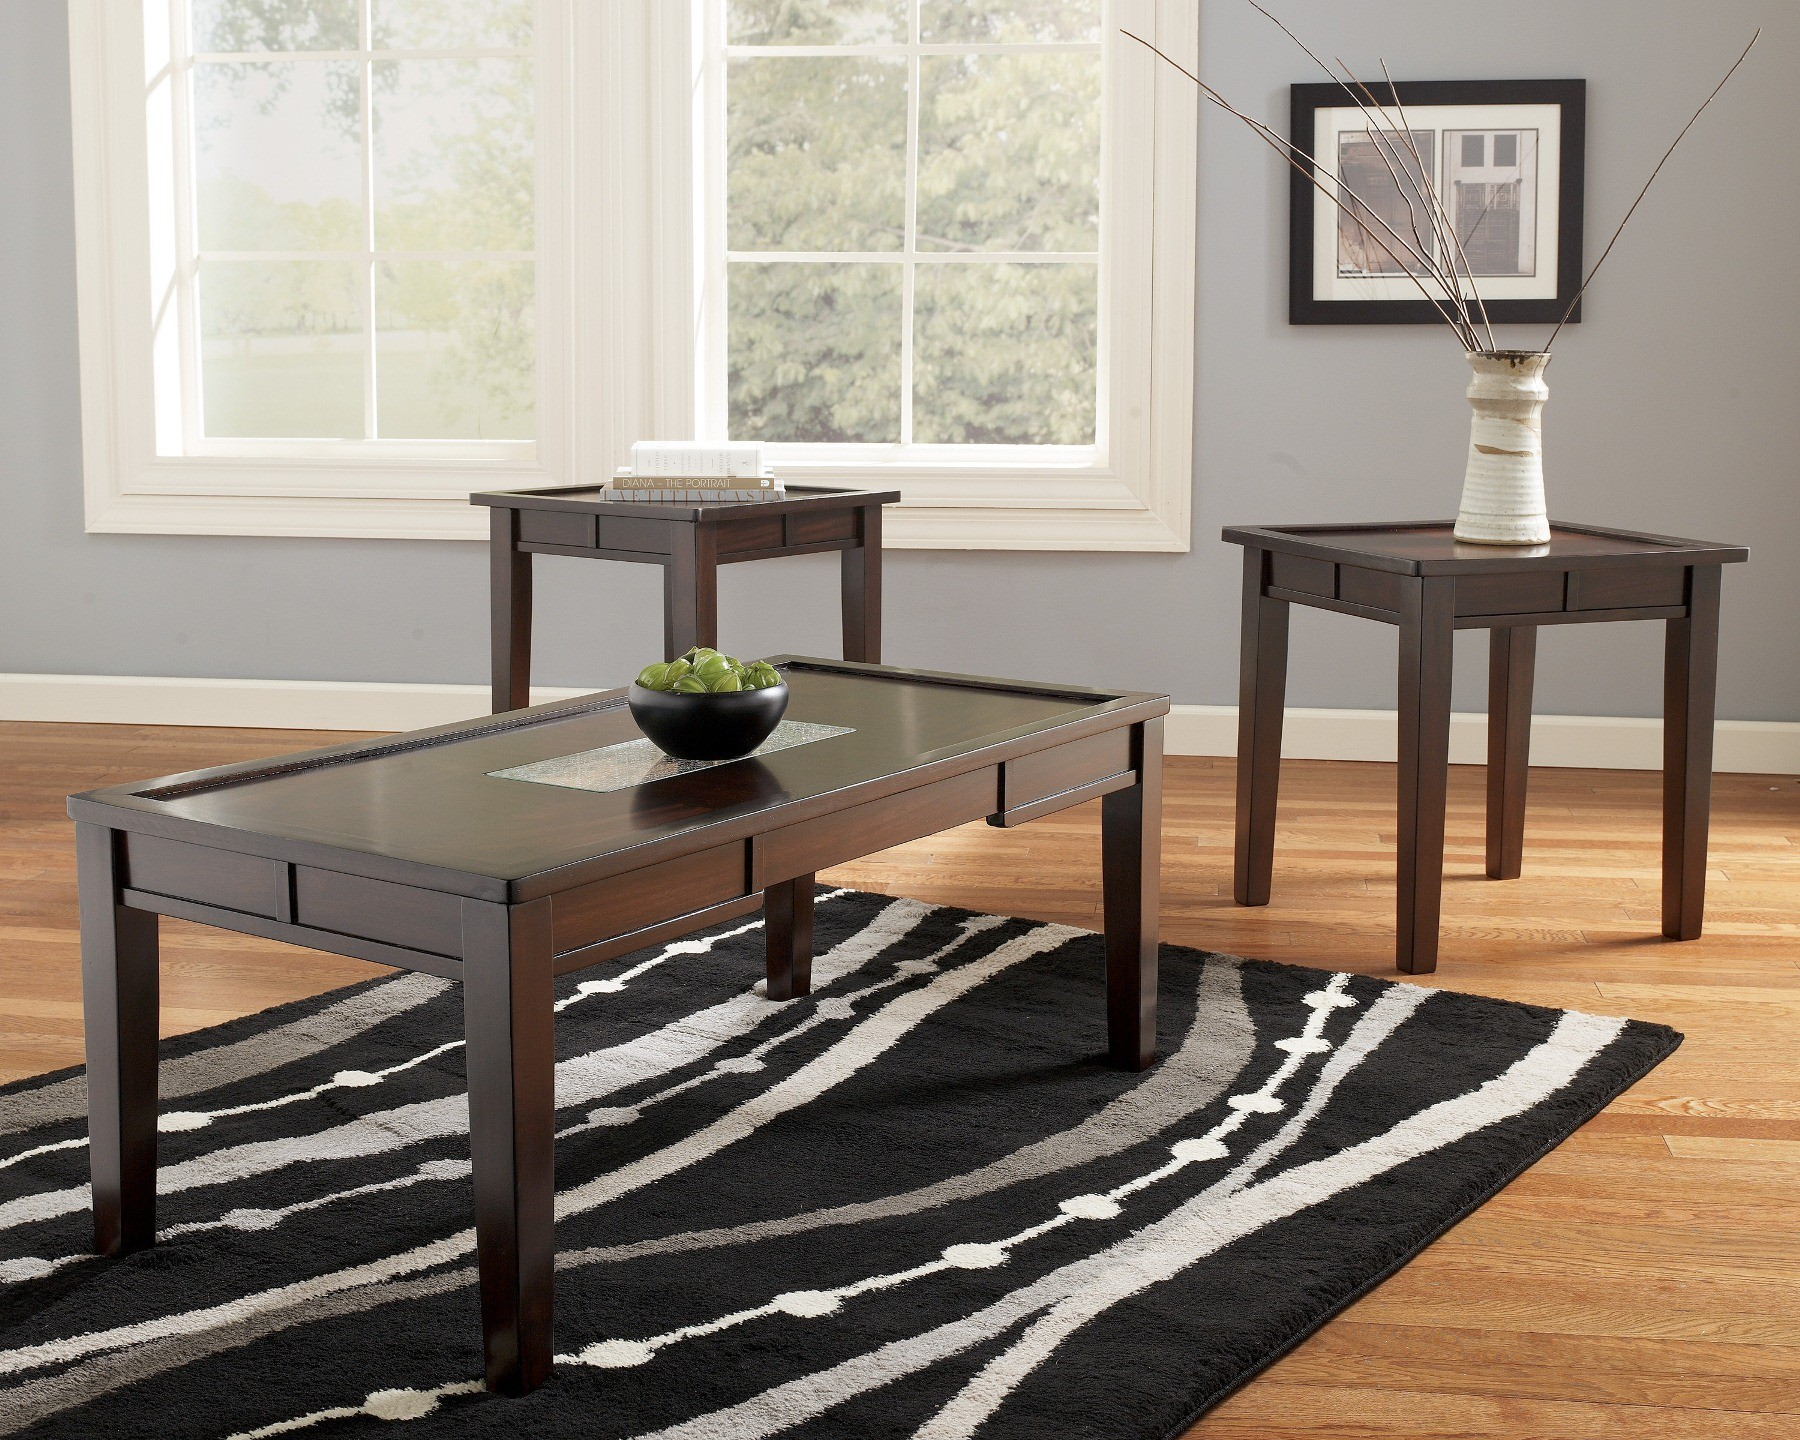 End Table Coffee Table Sets Price And Material Preference Should Fit Your Set Choice So It Would Take Some Time To Select The Best Set (Image 5 of 9)